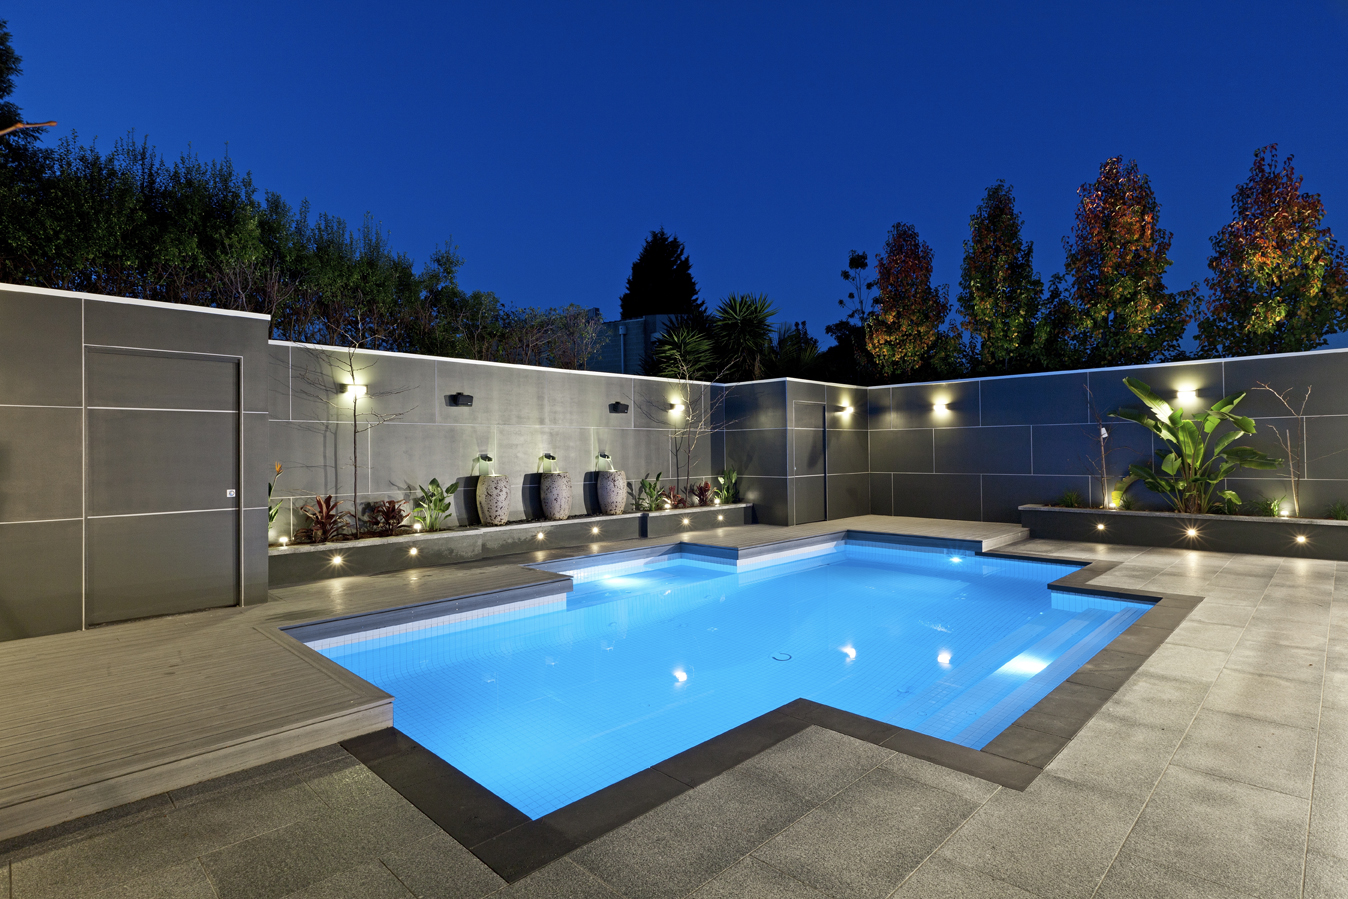 backyard landscaping ideas swimming pool design homesthetics inspiring ideas for your home. Black Bedroom Furniture Sets. Home Design Ideas